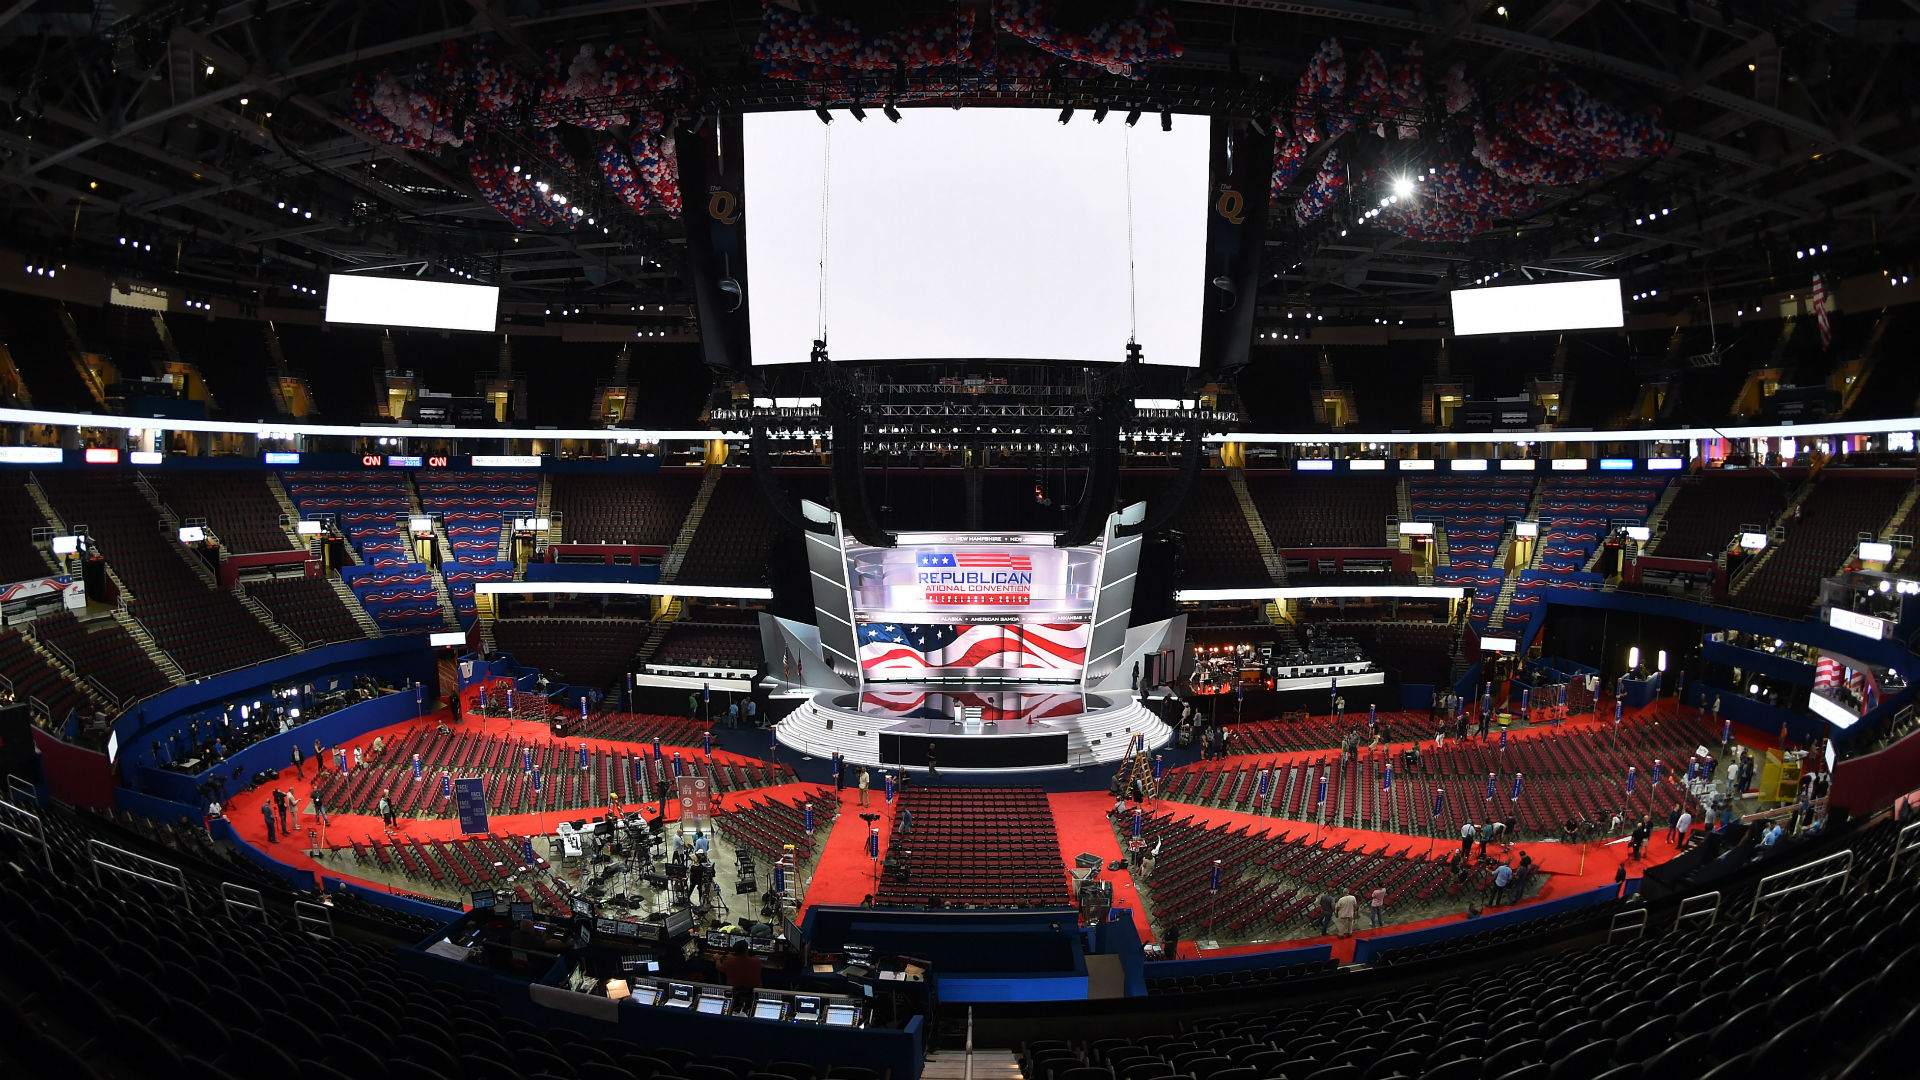 Seating charts quicken loans arena official website - Quicken Loans Arena Transforms For Republican National Convention Nba Sporting News